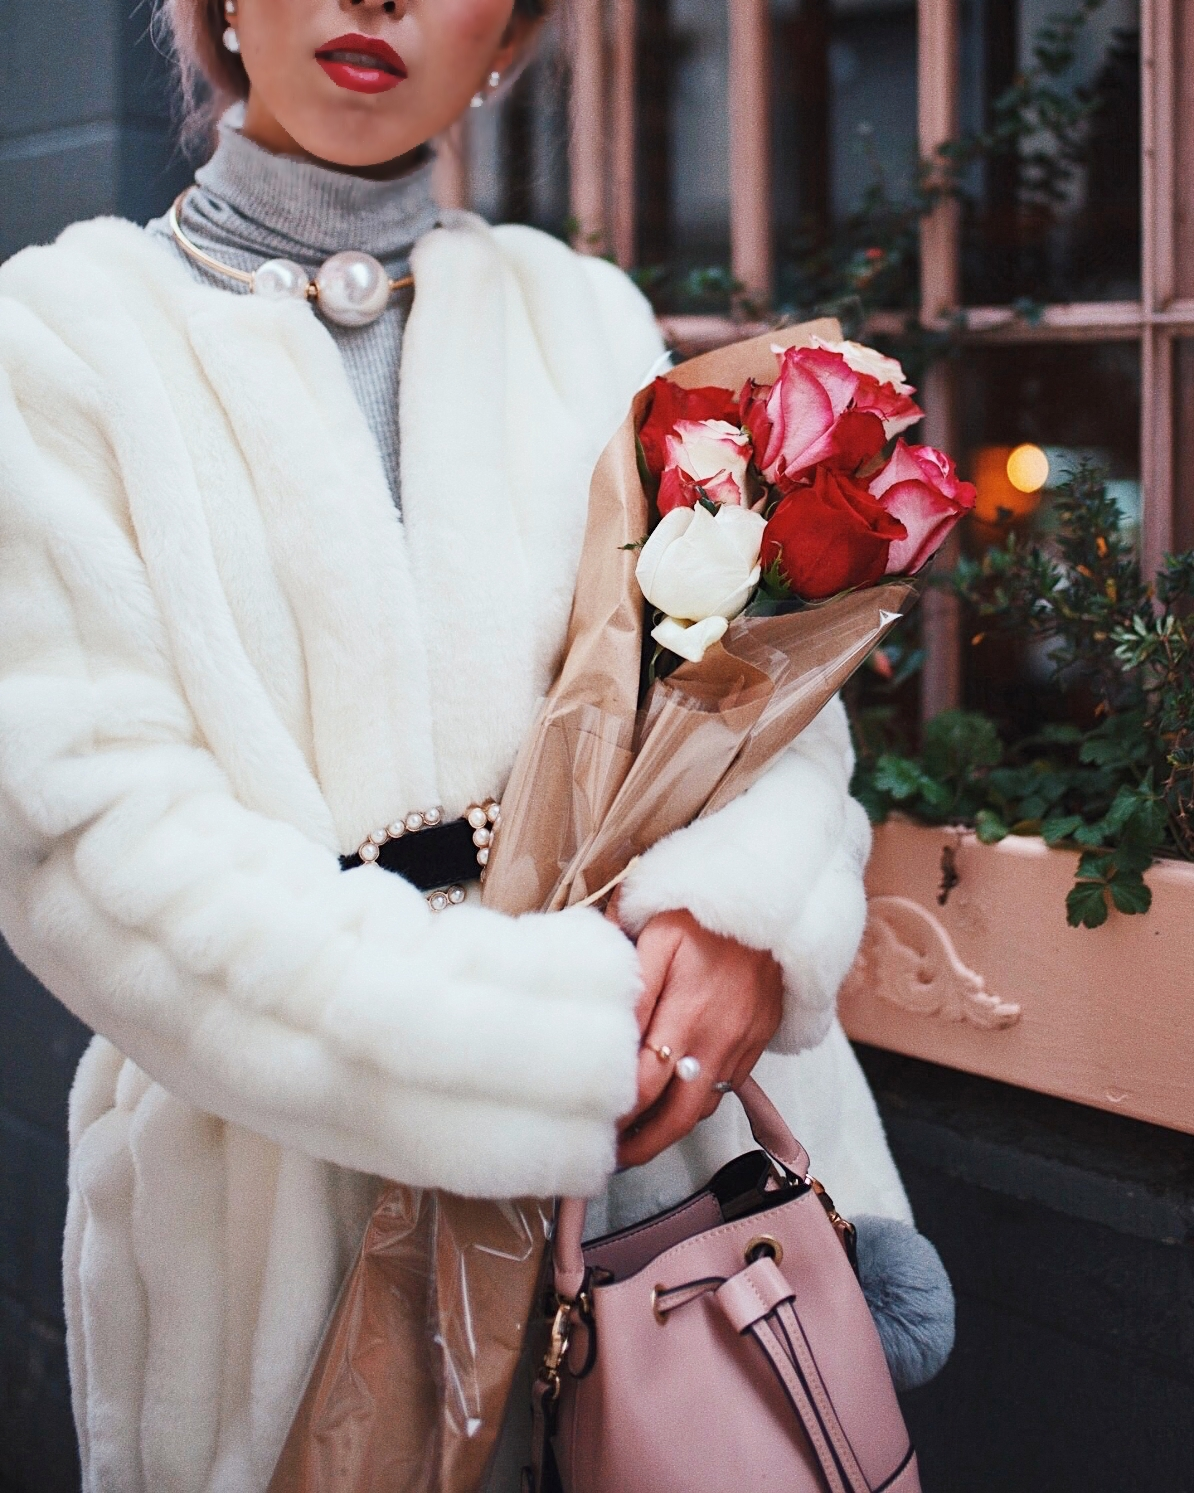 H&M Gray Turtleneck Sweater-ASOS high waisted skinny jean-EGO Grey Over the Knee Boots-While Faux Fur Coat-Forever 21 Pearl Belt & Pink Mini Basket Bag-Chanel Ribbon Hair-Valentine's Day-Rose bouquet-Pink Hair-Japanese-Seattle Style Fashion Blogger-AikA's Love Closet 23